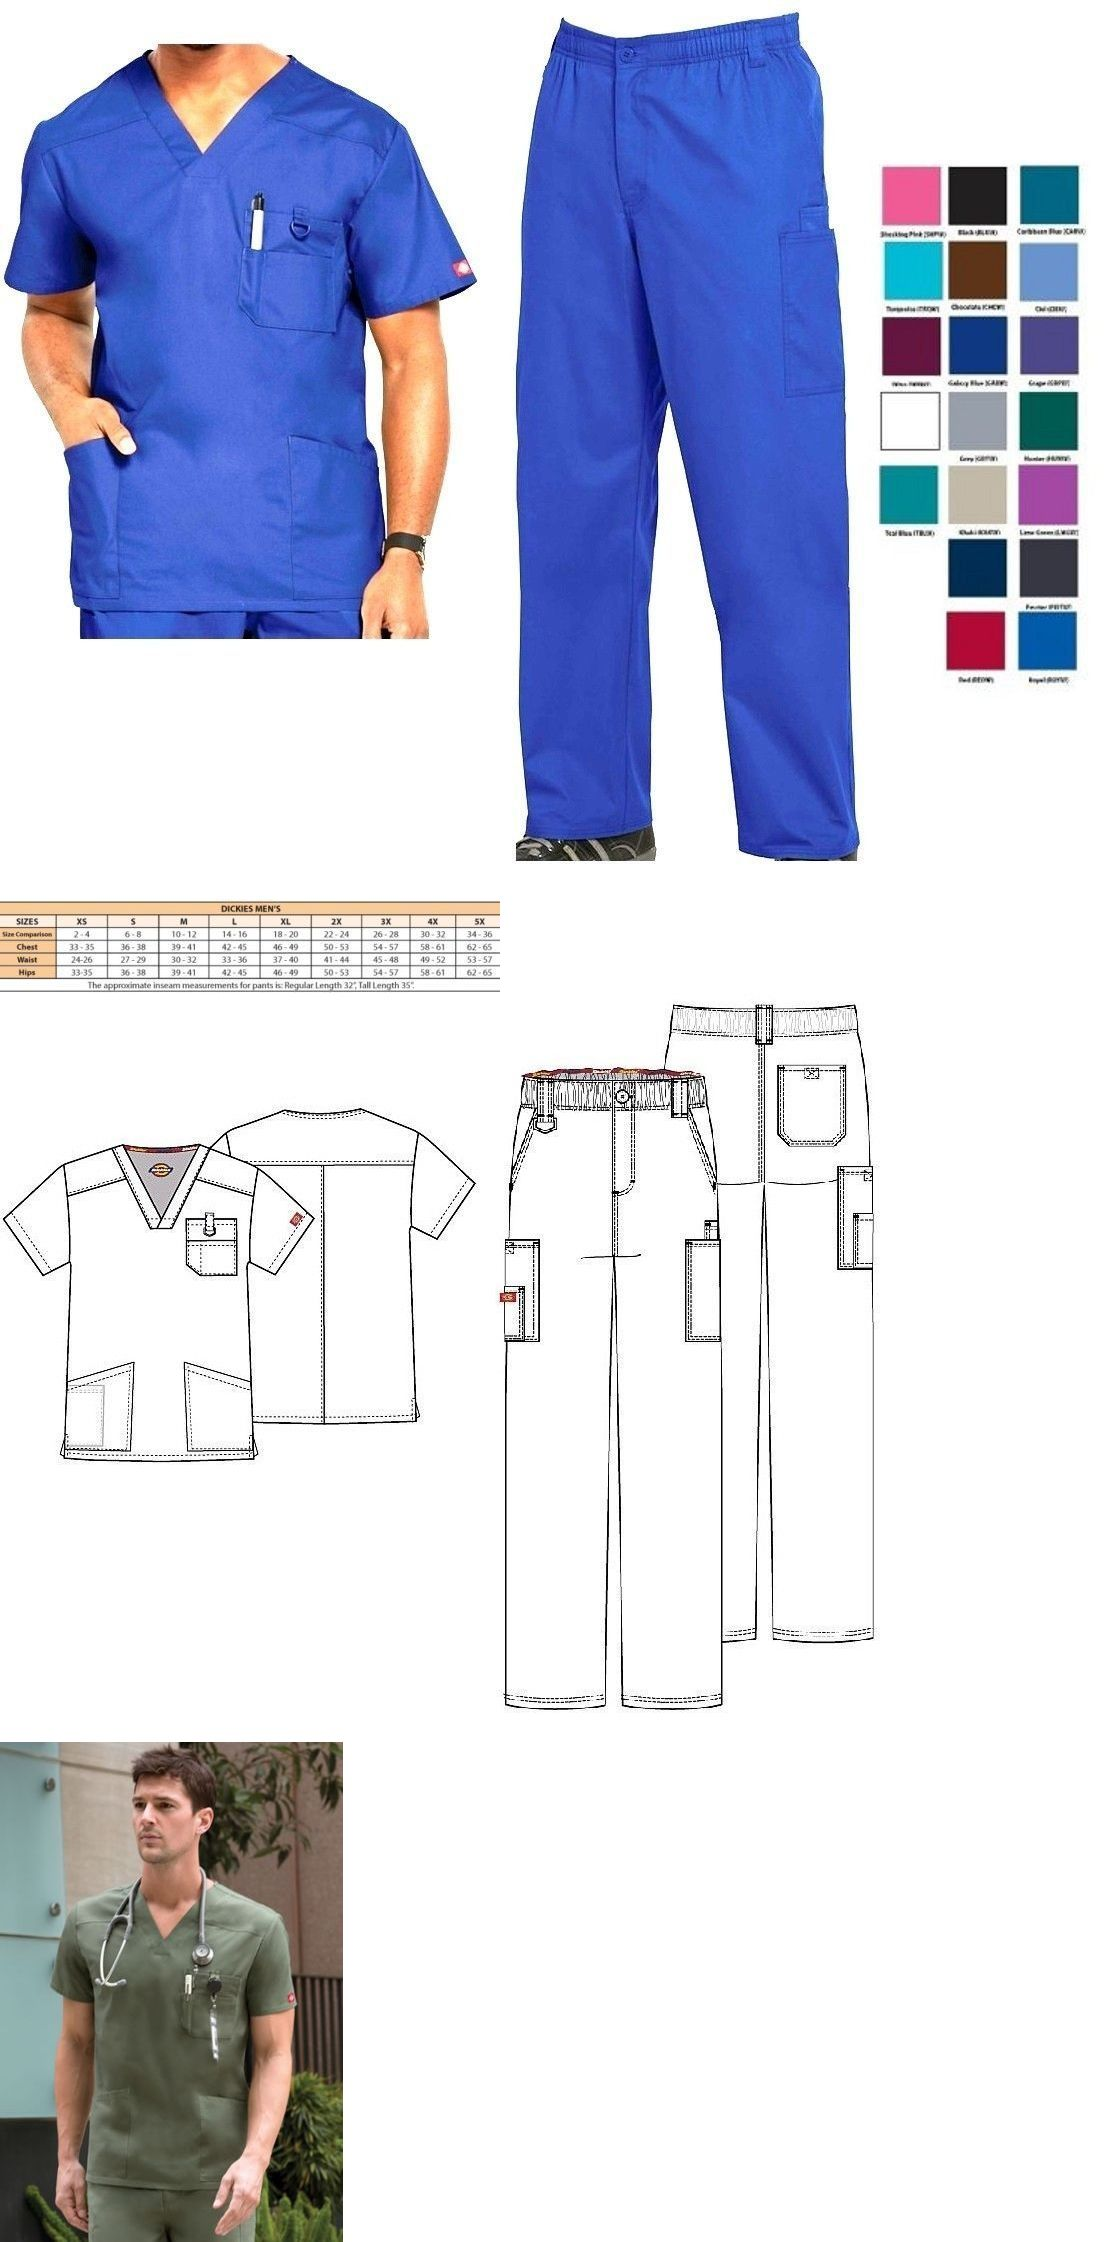 595a6b52777 Sets 105432: Dickies Mens Scrubs Eds Signature Sets Top 81906 Pants 81006  All Colors All Size -> BUY IT NOW ONLY: $43.96 on #eBay #dickies #scrubs ...